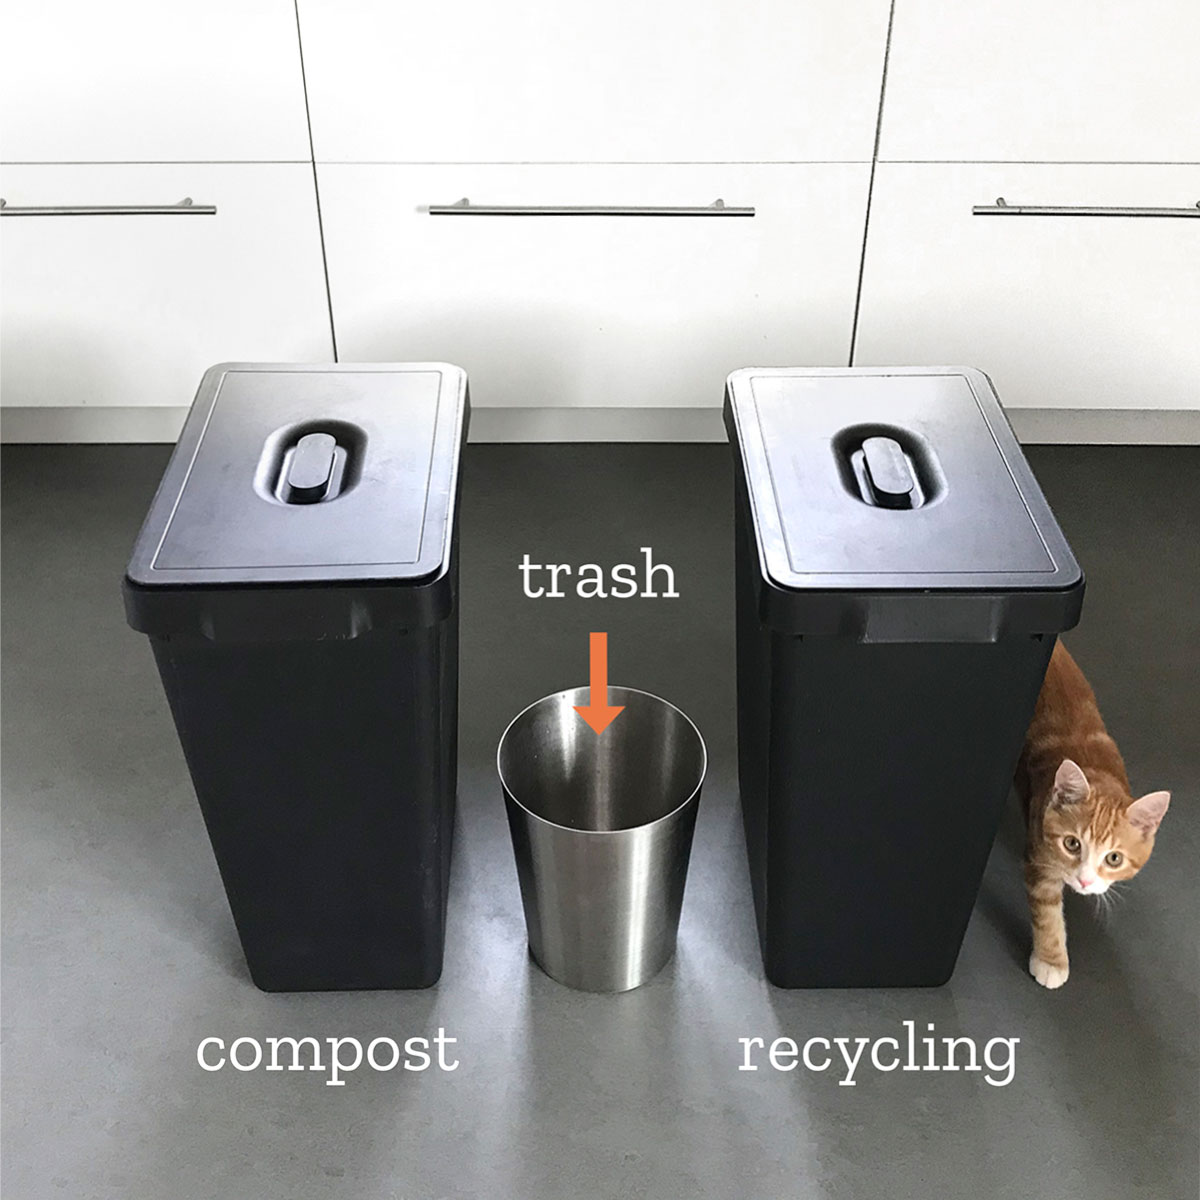 Try a tiny trash can waste sorting configuration